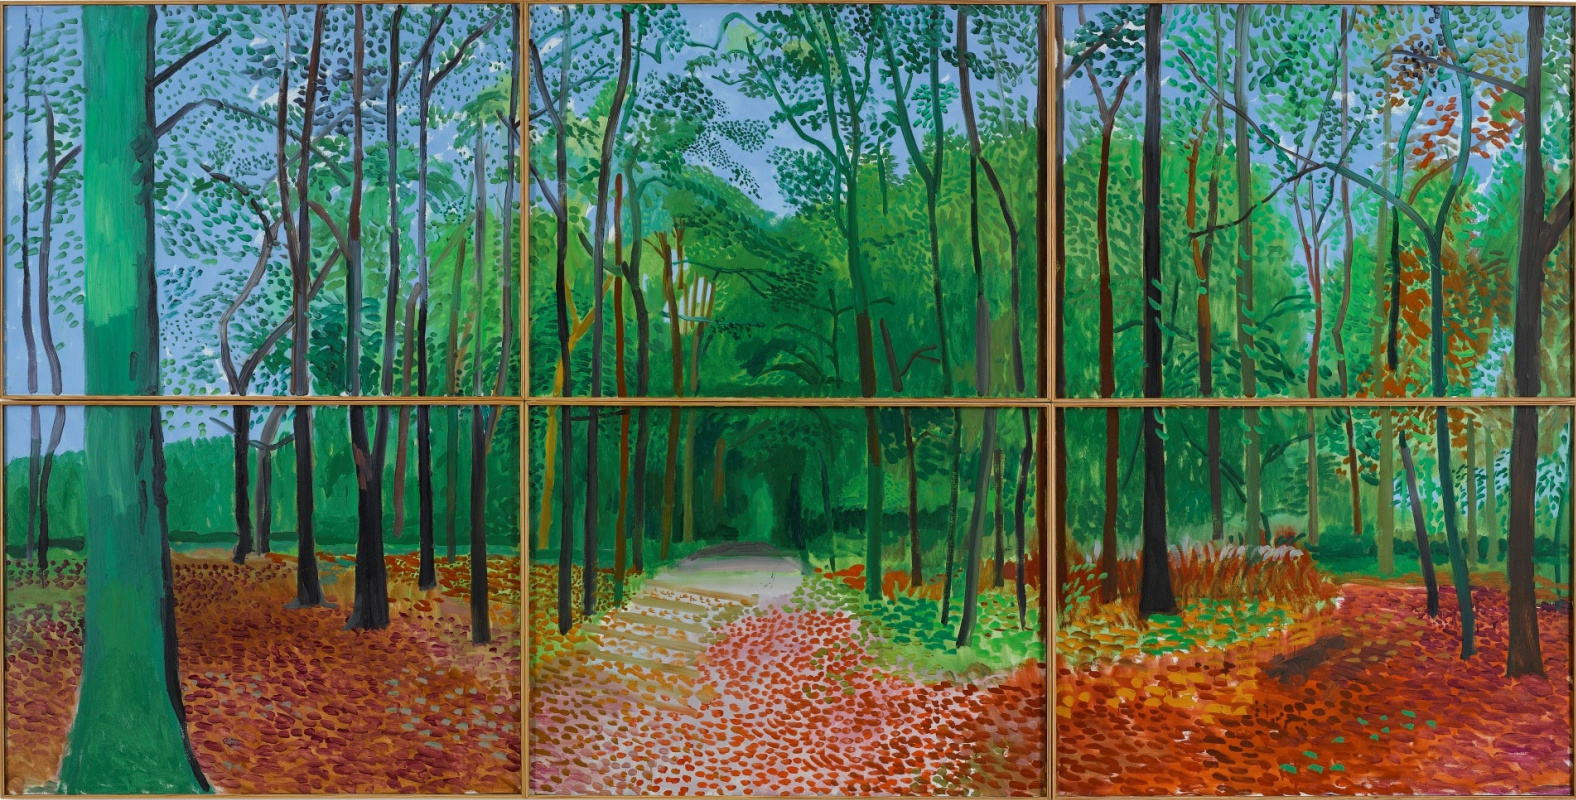 David Hockney. Forests in East Yorkshire on October 24, 25 and 26, 2006